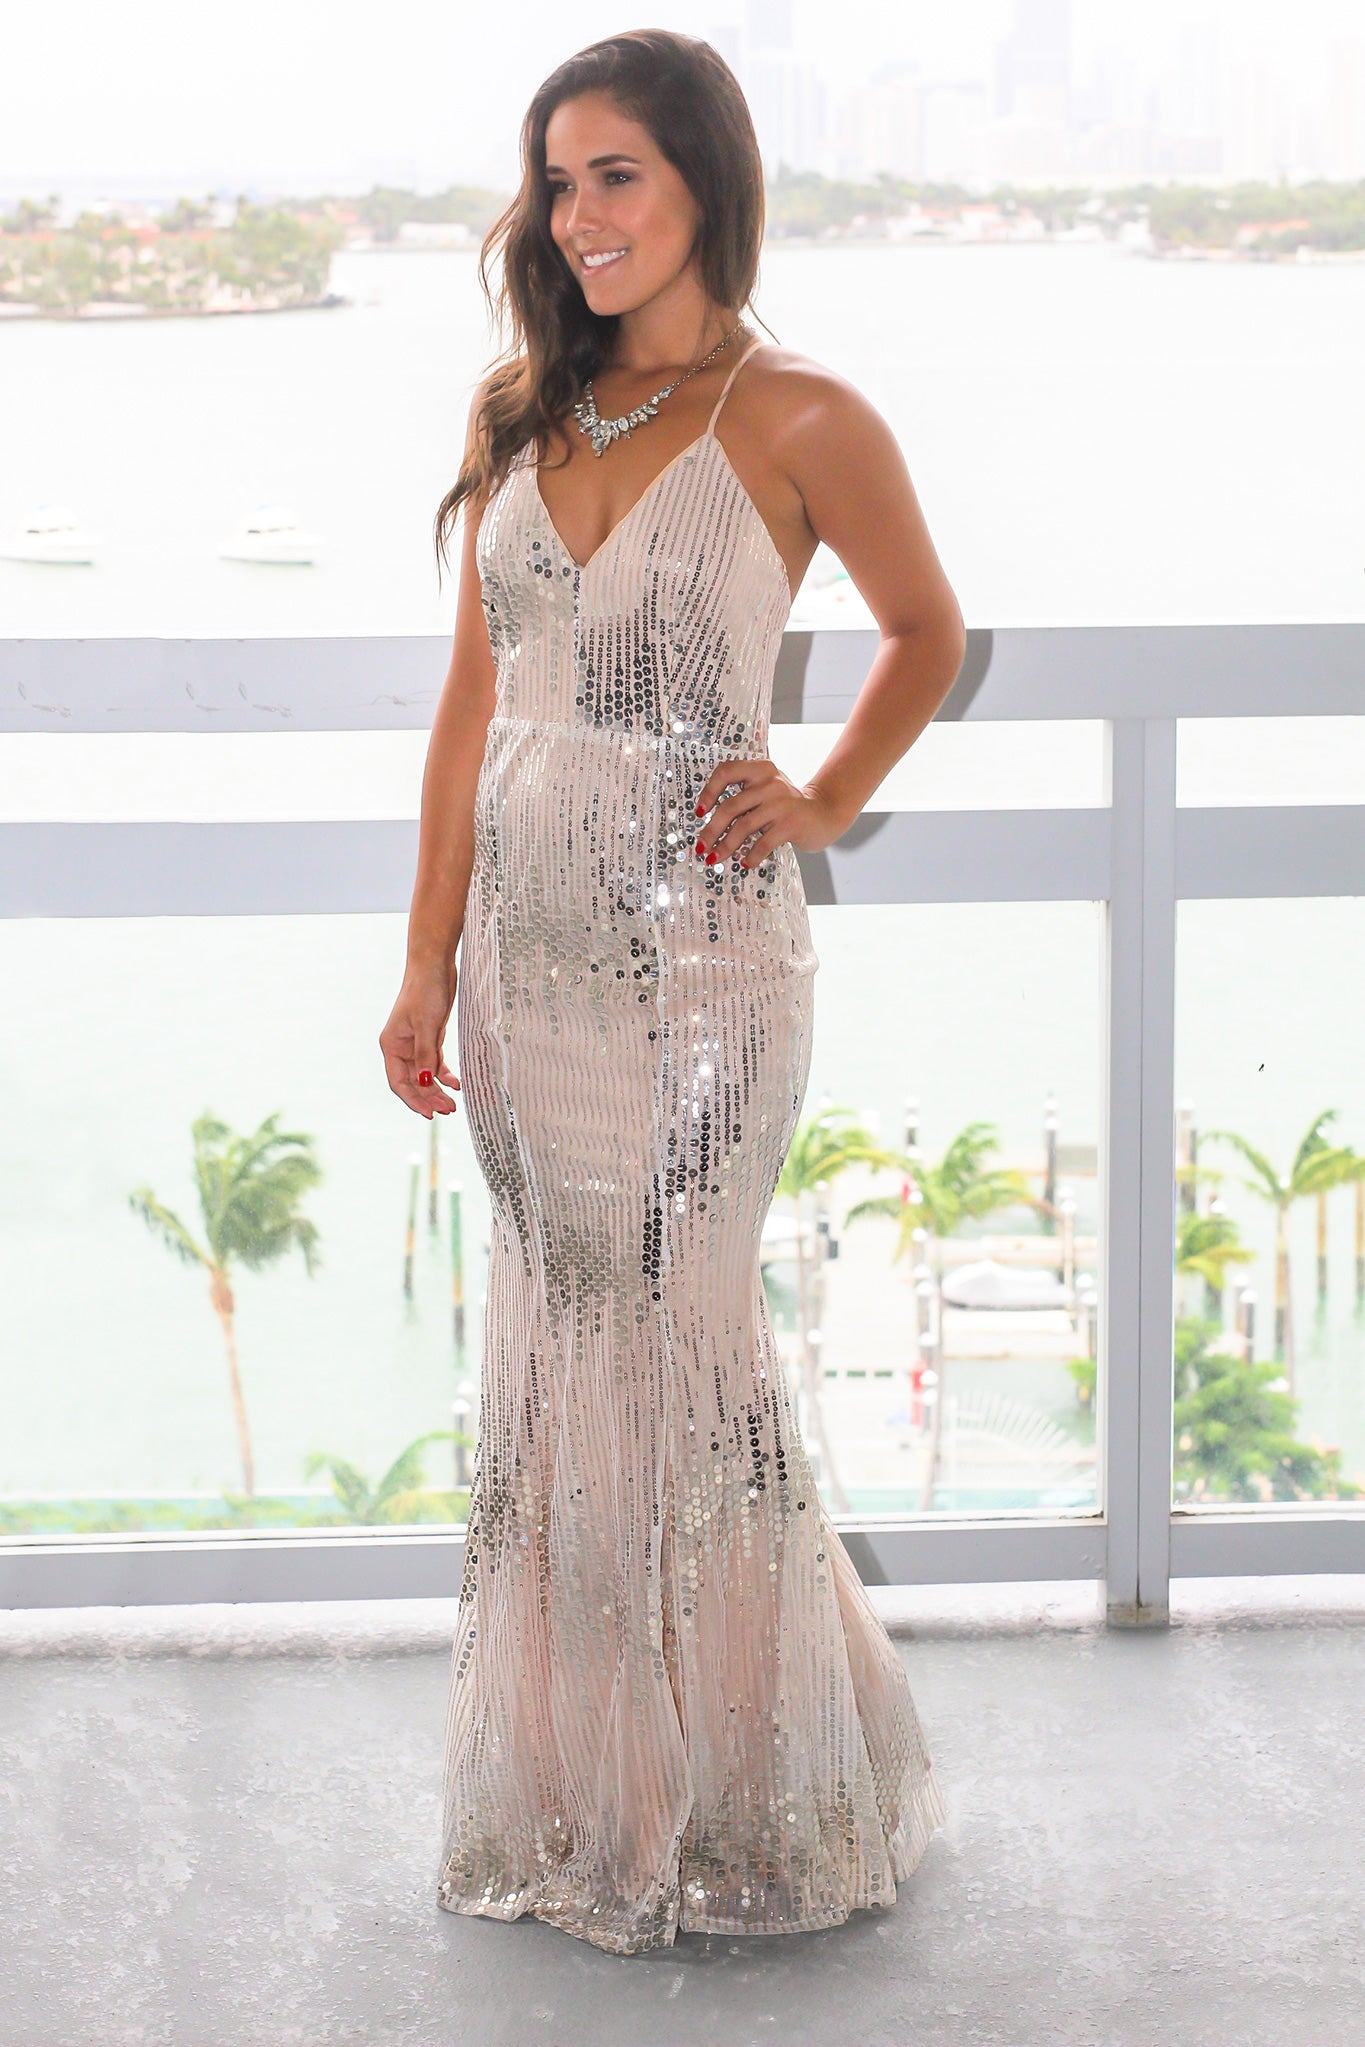 Nude Maxi Dress with Silver and Gold Detail